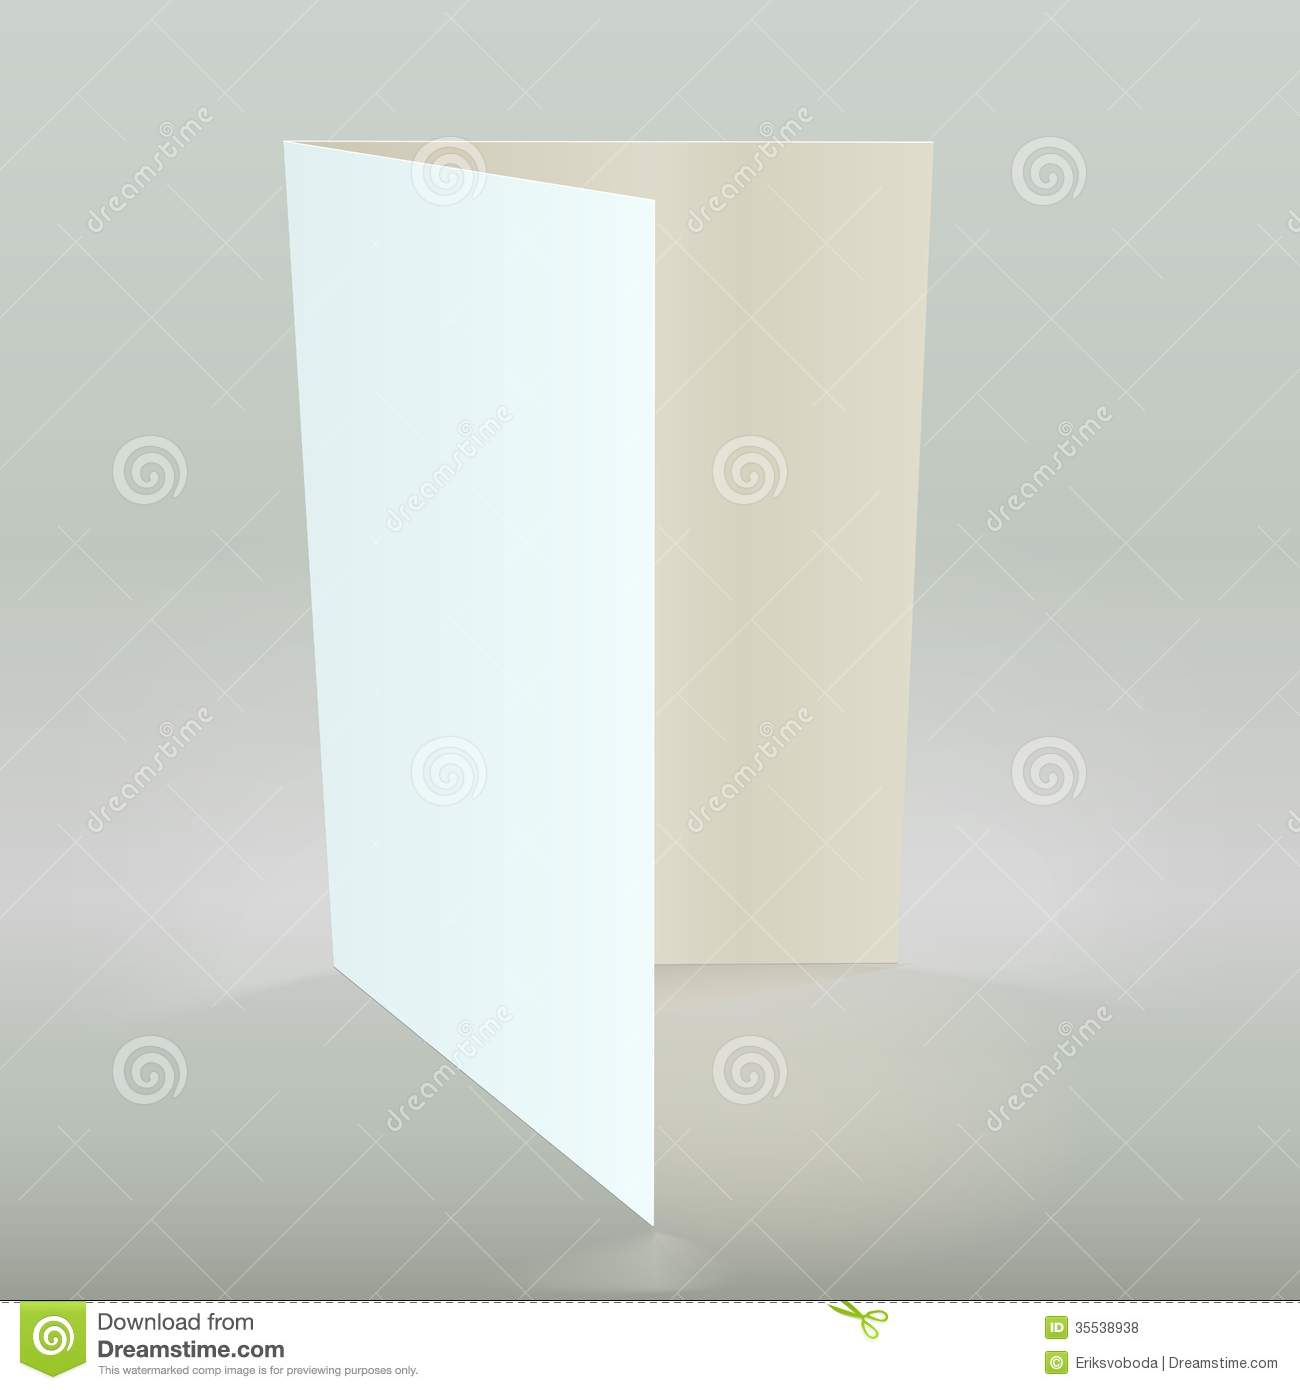 How To Make A Book Cover Out Of A Paper Bag ~ Empty greeting card vector illustration stock vector